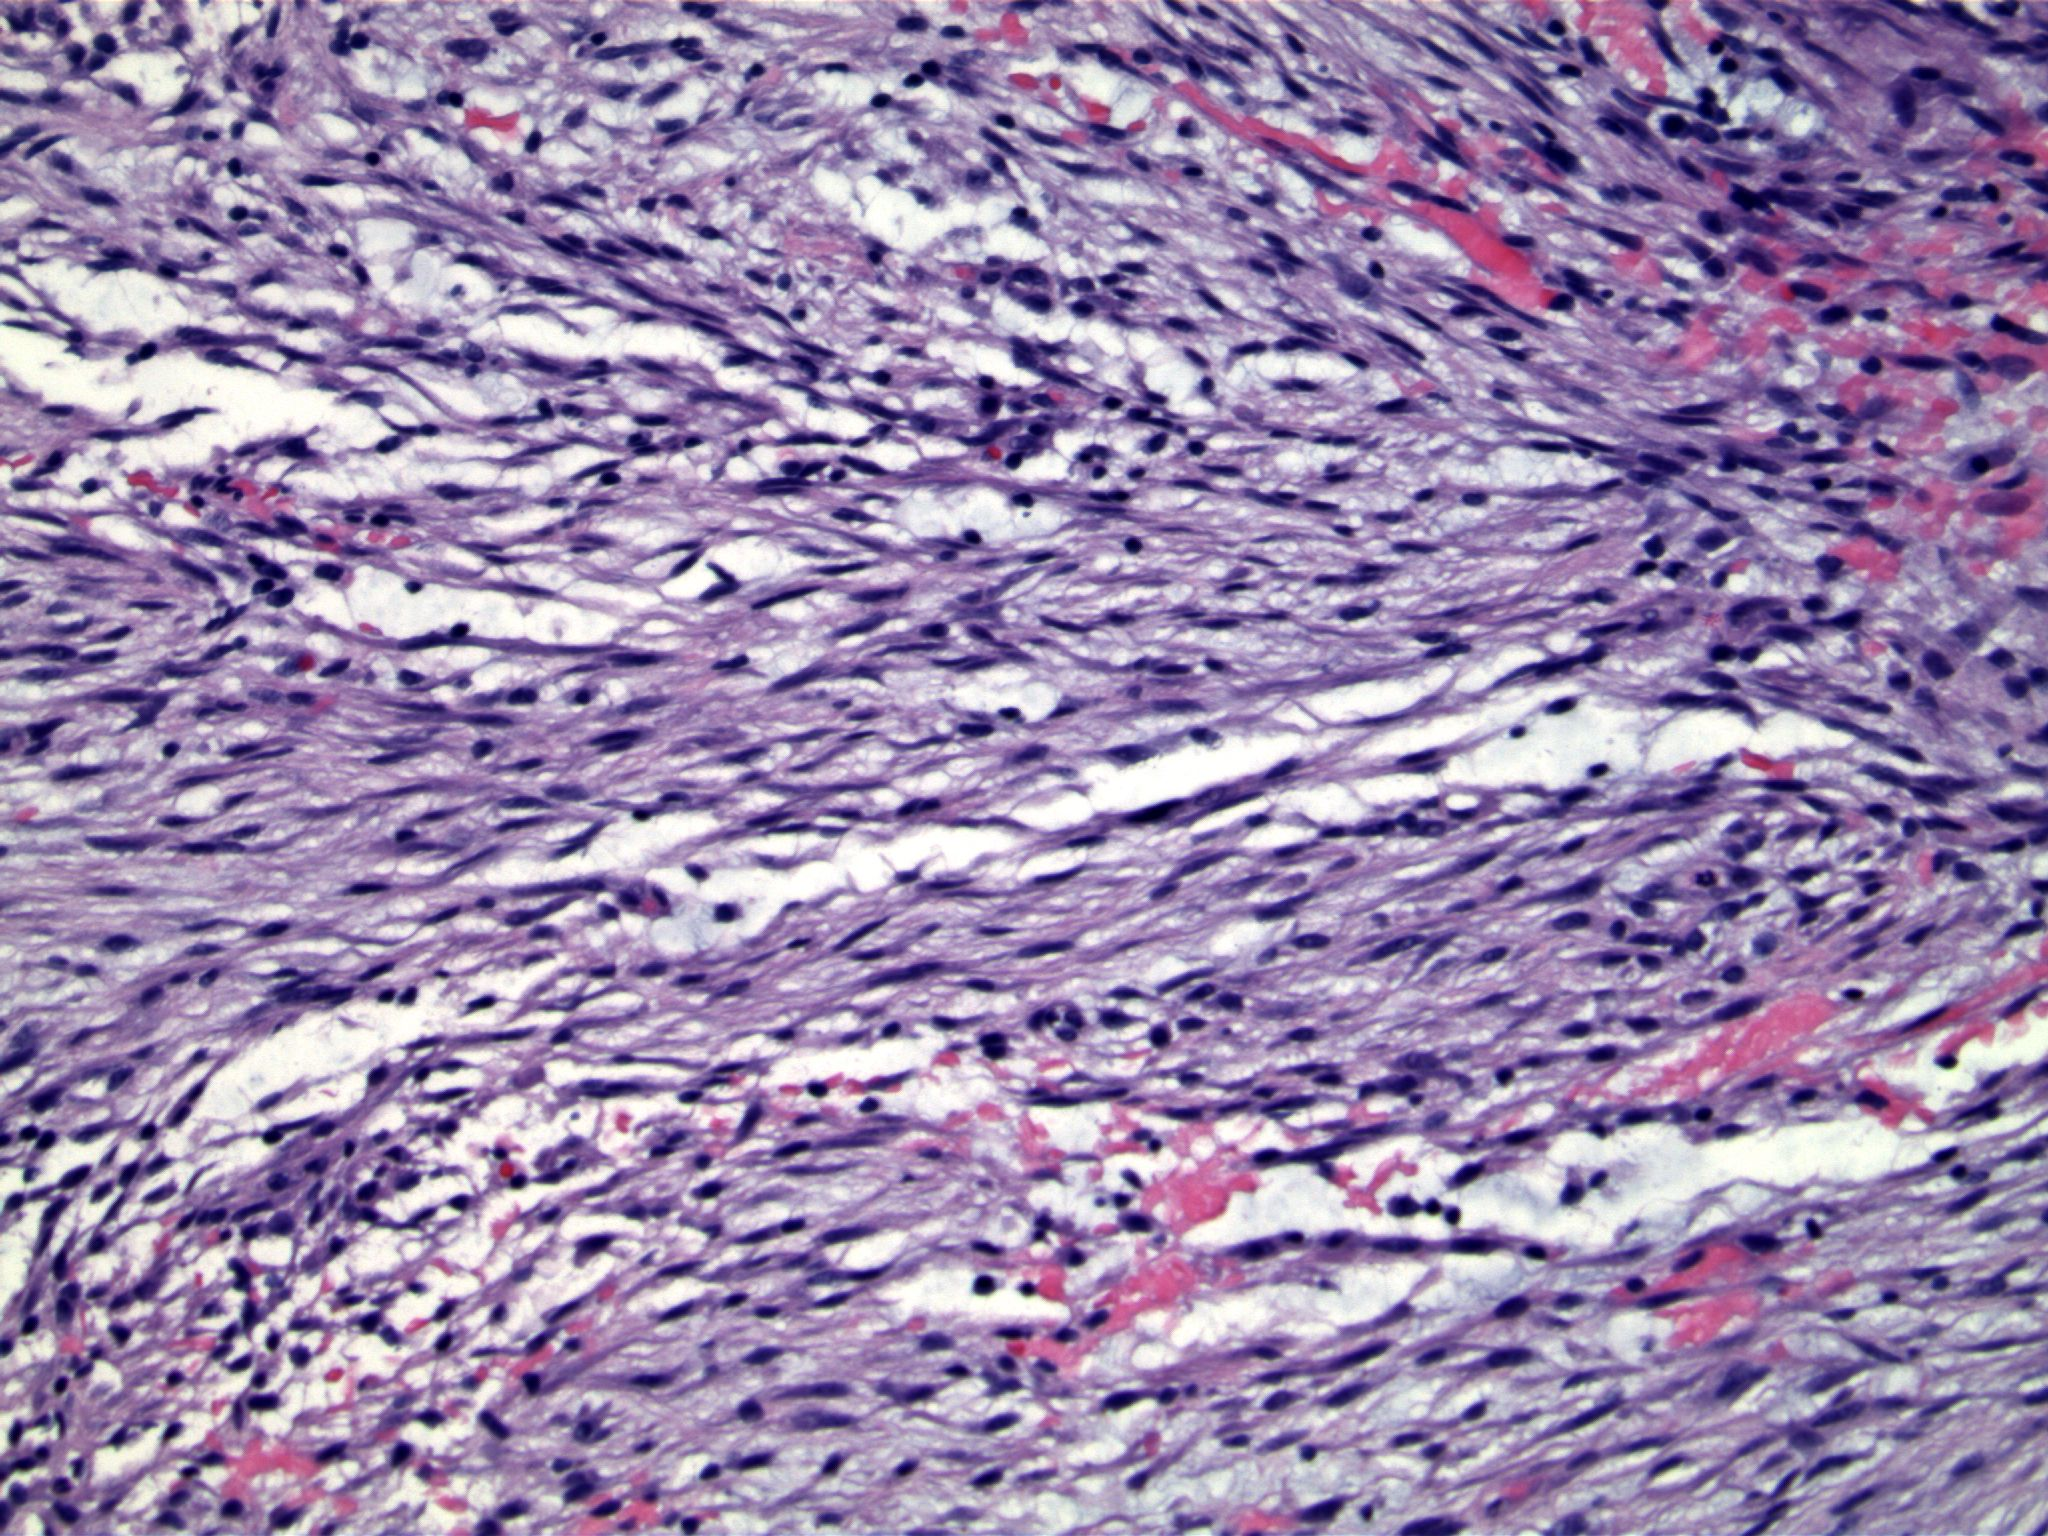 Image 3. Spindled cells have the appearance of cells in tissue culture. Note areas of hemorrhage.